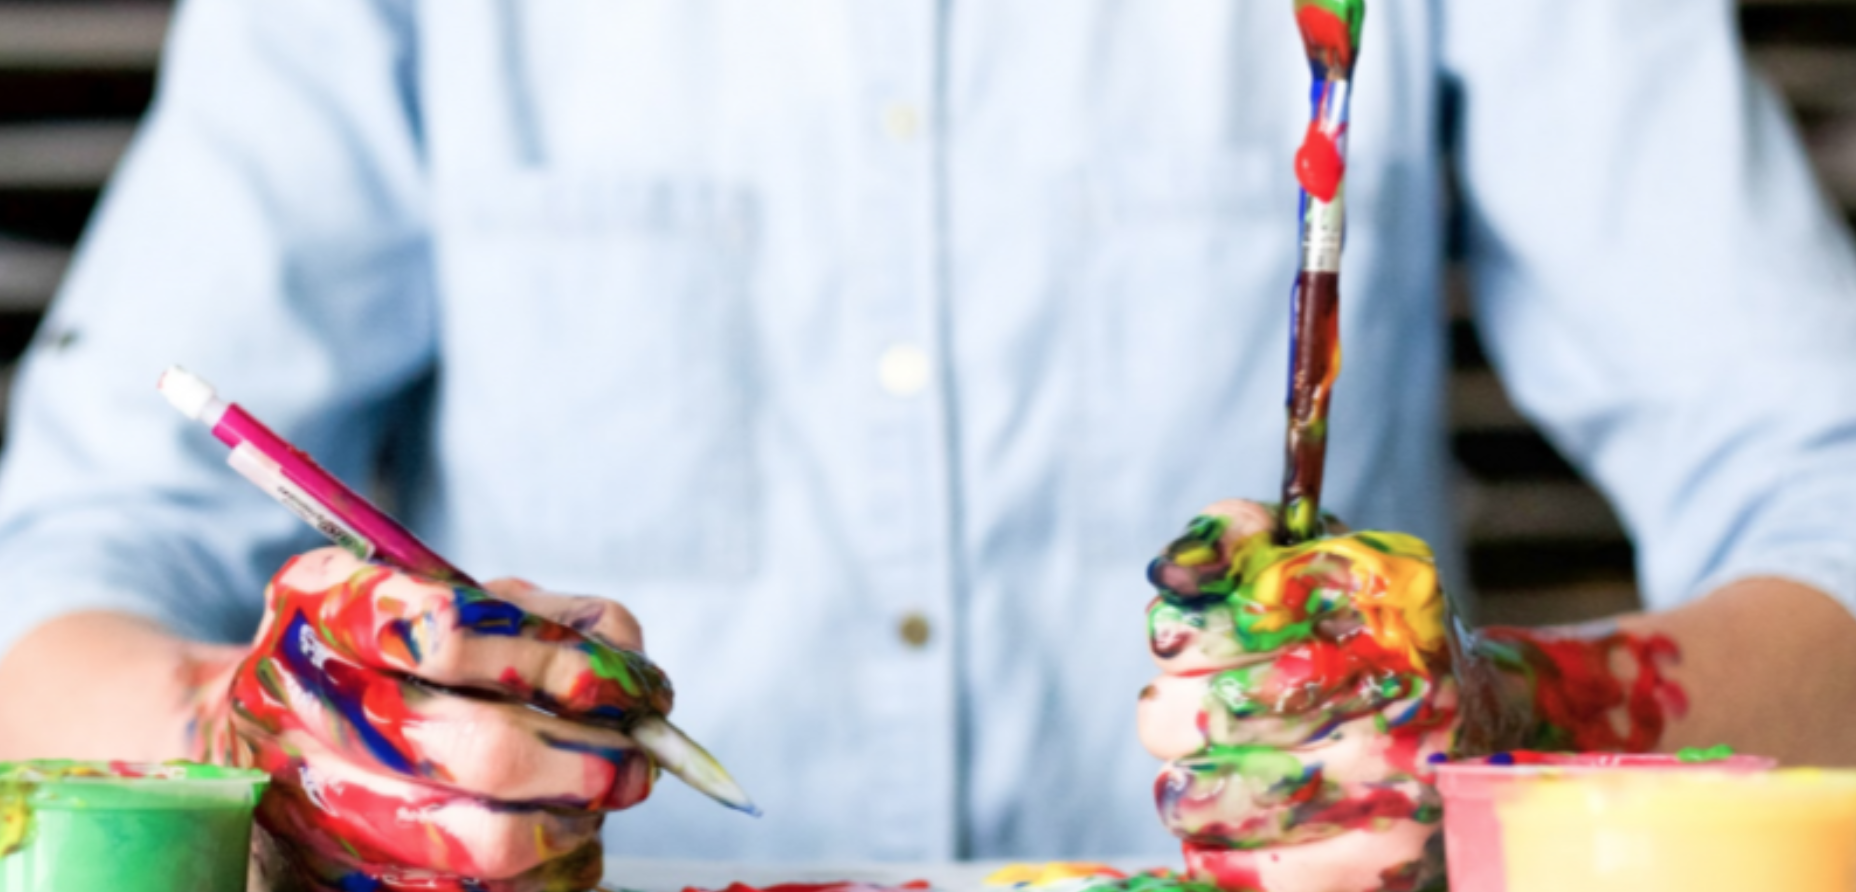 A man covered in paint holding a pencil in one hand and a paint brush in the other